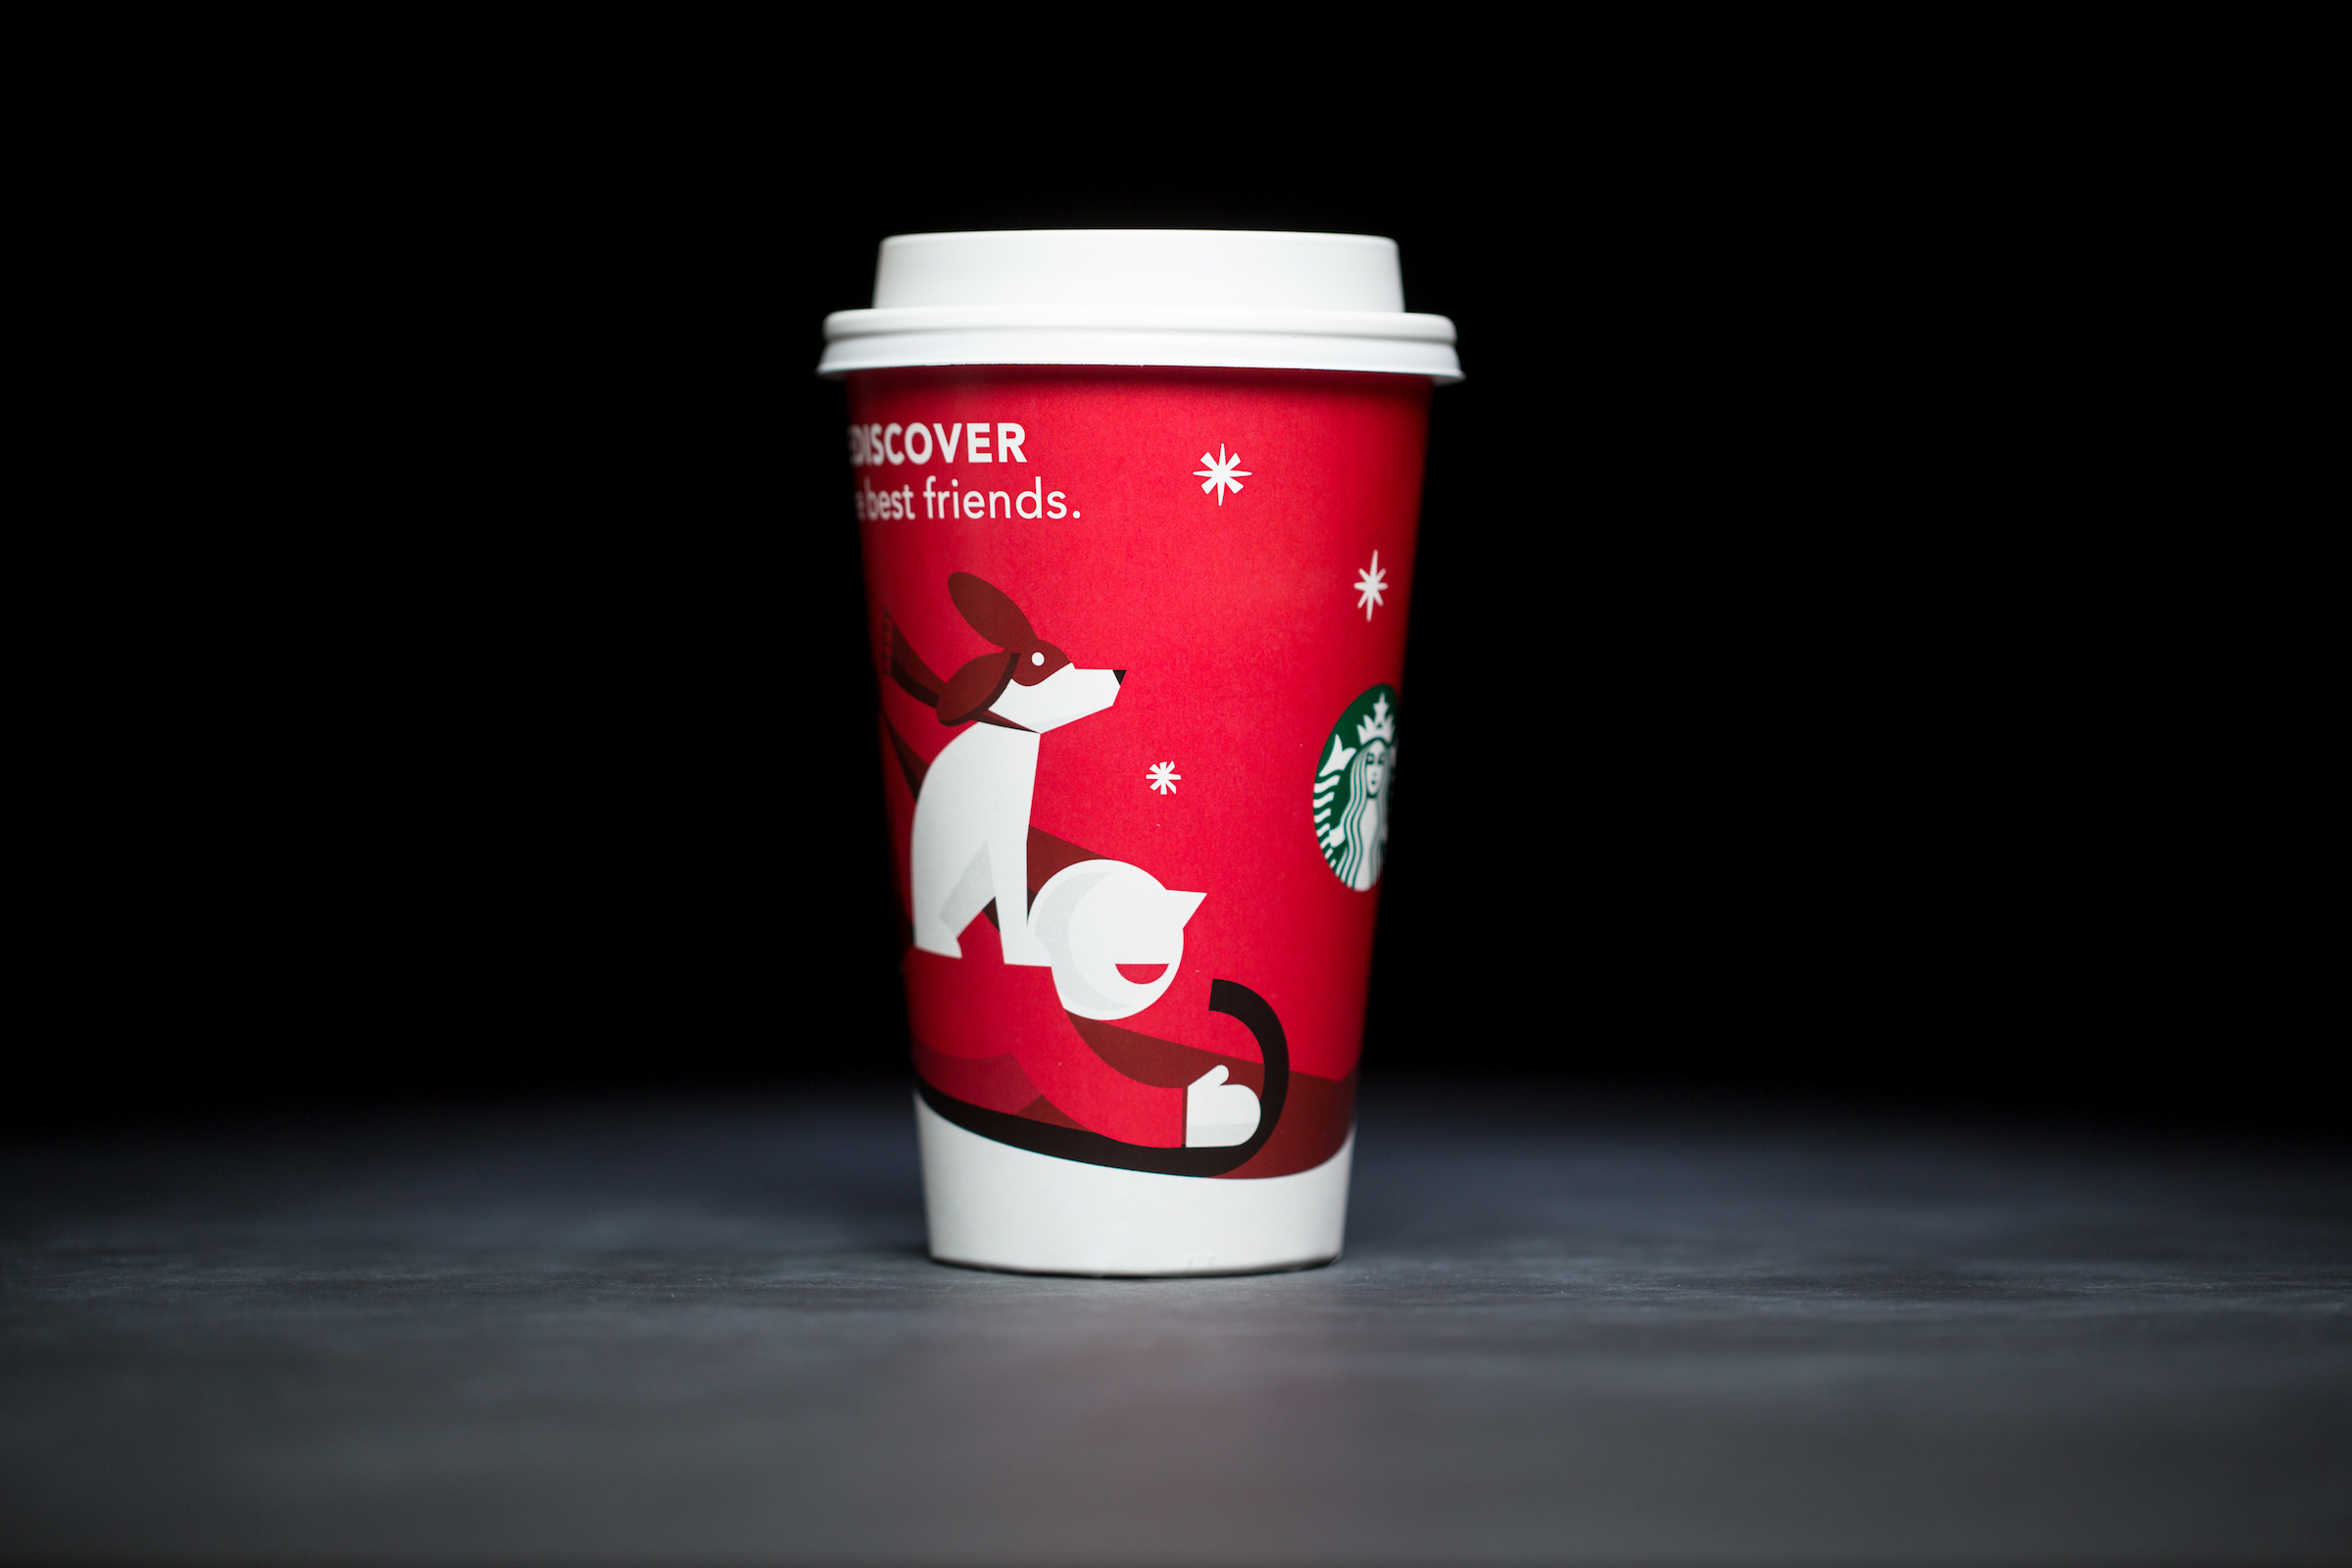 2011: For 20 years, Starbucks have released a range of holiday cup designs, most of them based around their world famous red cup. It's not easy to find the very first Starbucks holiday cups, which made their debut in stores in 1997. Few were saved, and electronic design files were lost in an earthquake in 2001. Even an Internet search is unyielding, with the cups having made their arrival long before the first selfie. But, we have them here! Click on for a photos of all 20 holidays cup designs. (Image: Joshua Trujillo/Cover Images)